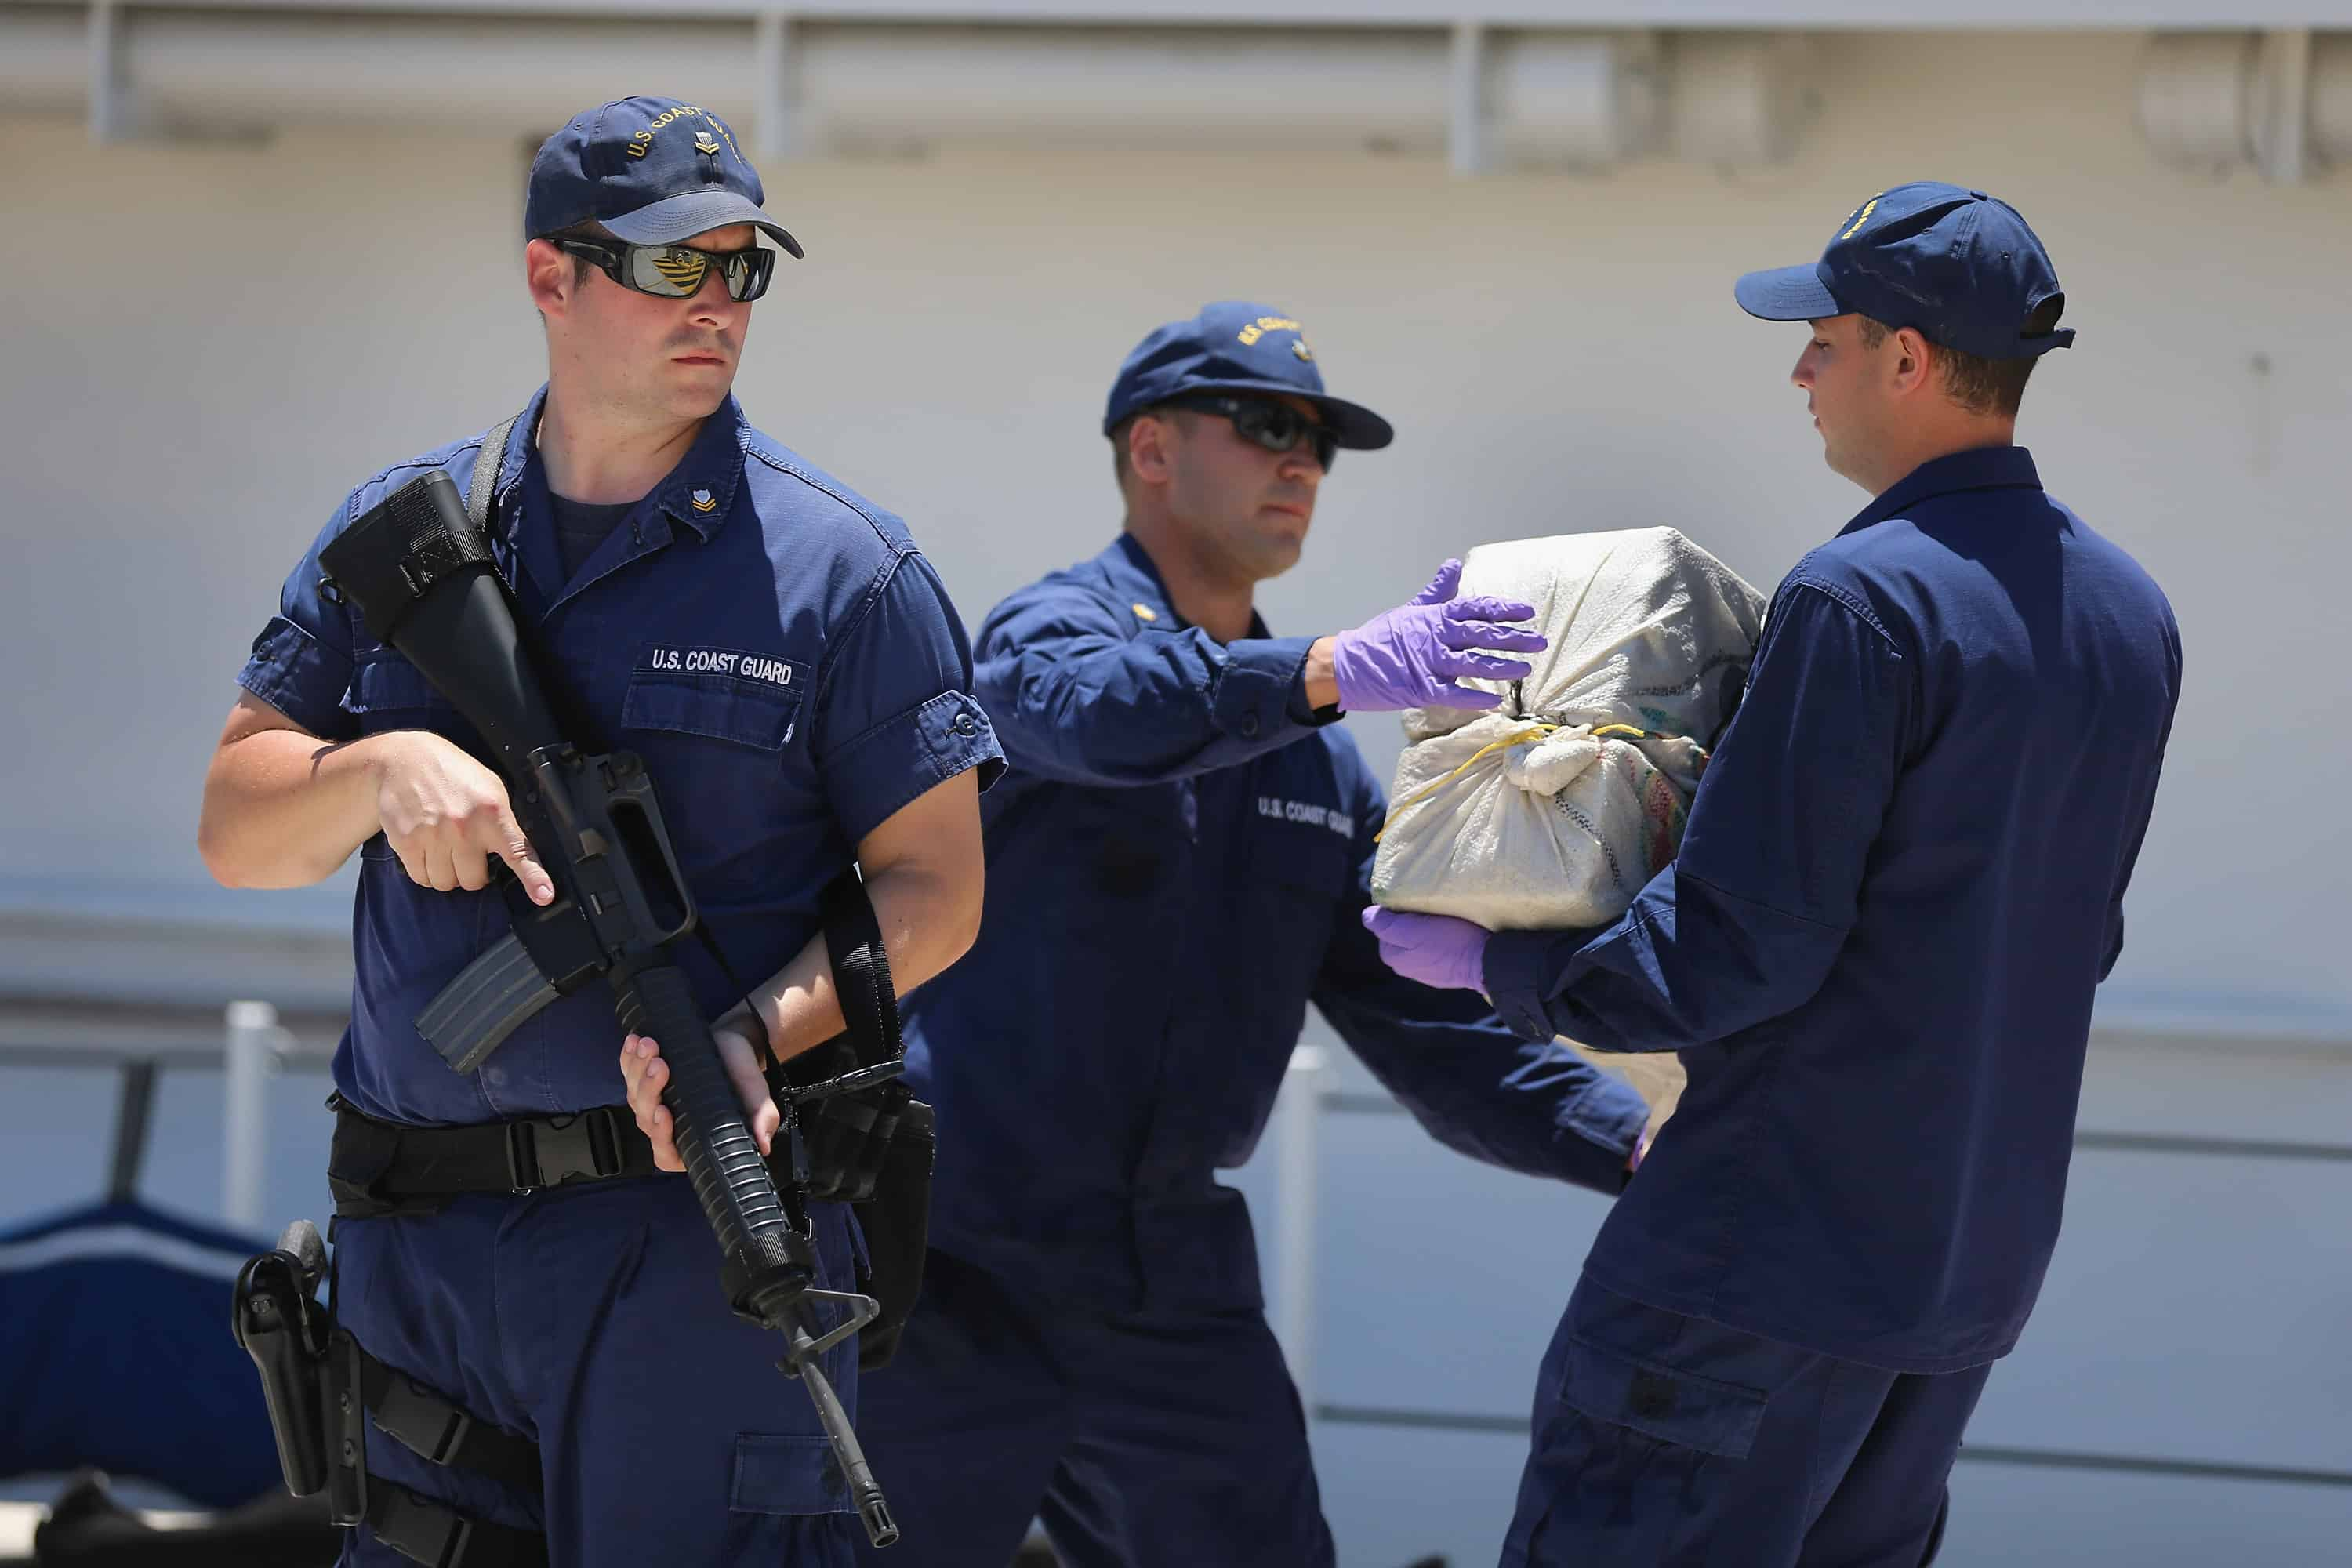 US Coast Guard and drug trafficking bust.